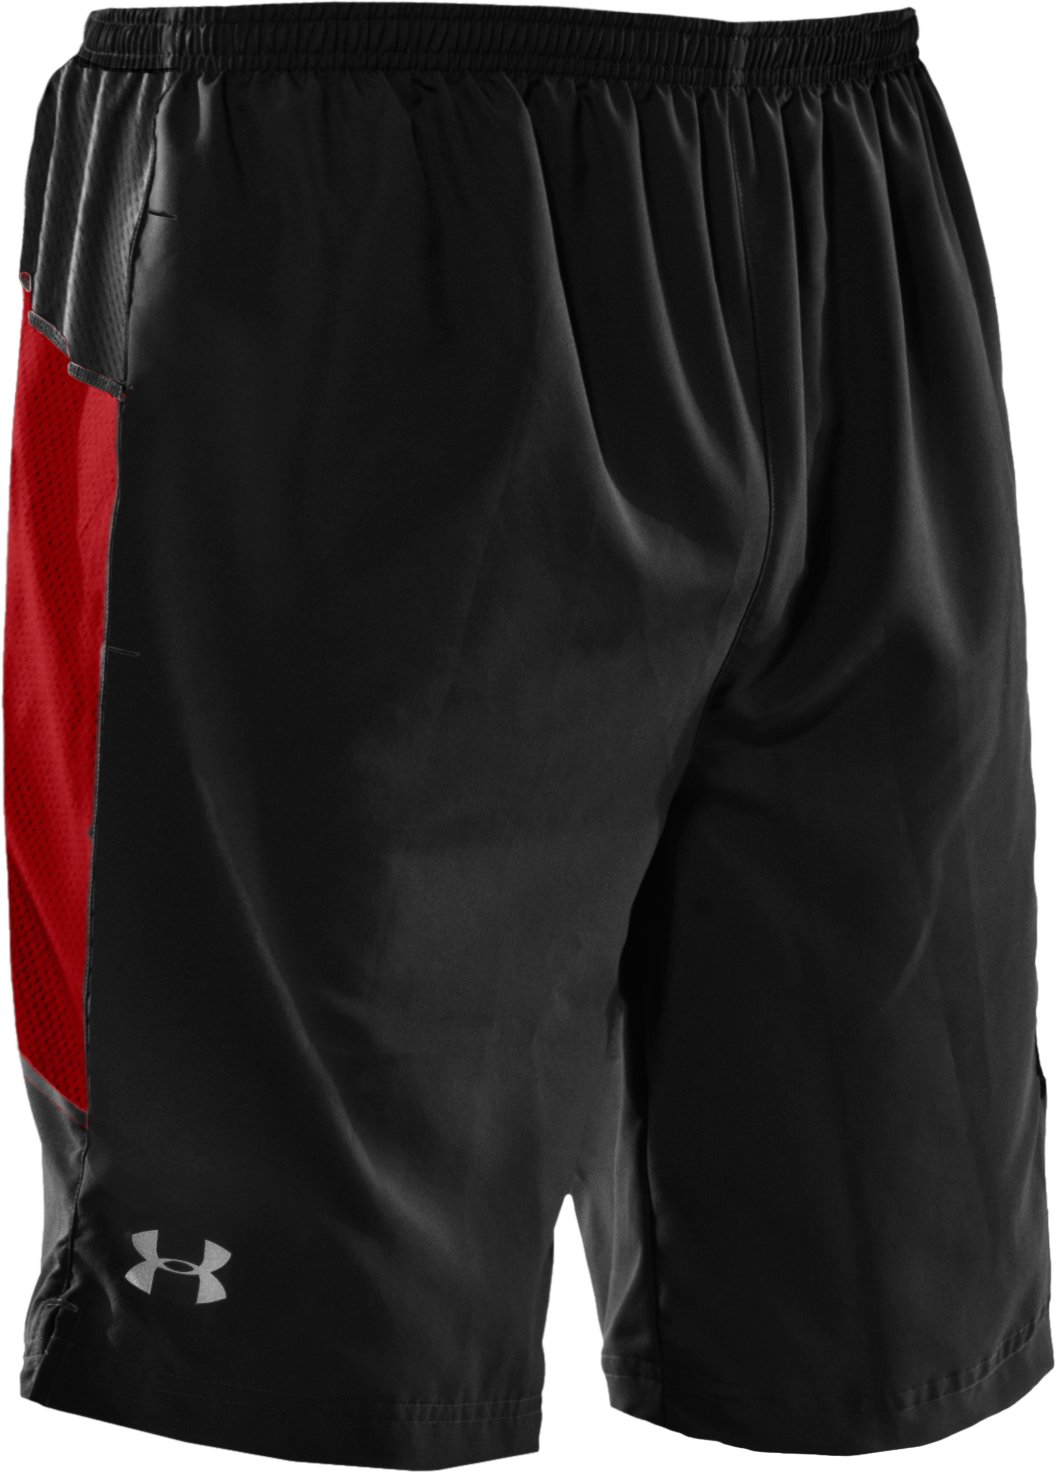 "Men's UA Escape 9"" Running Shorts, Black"